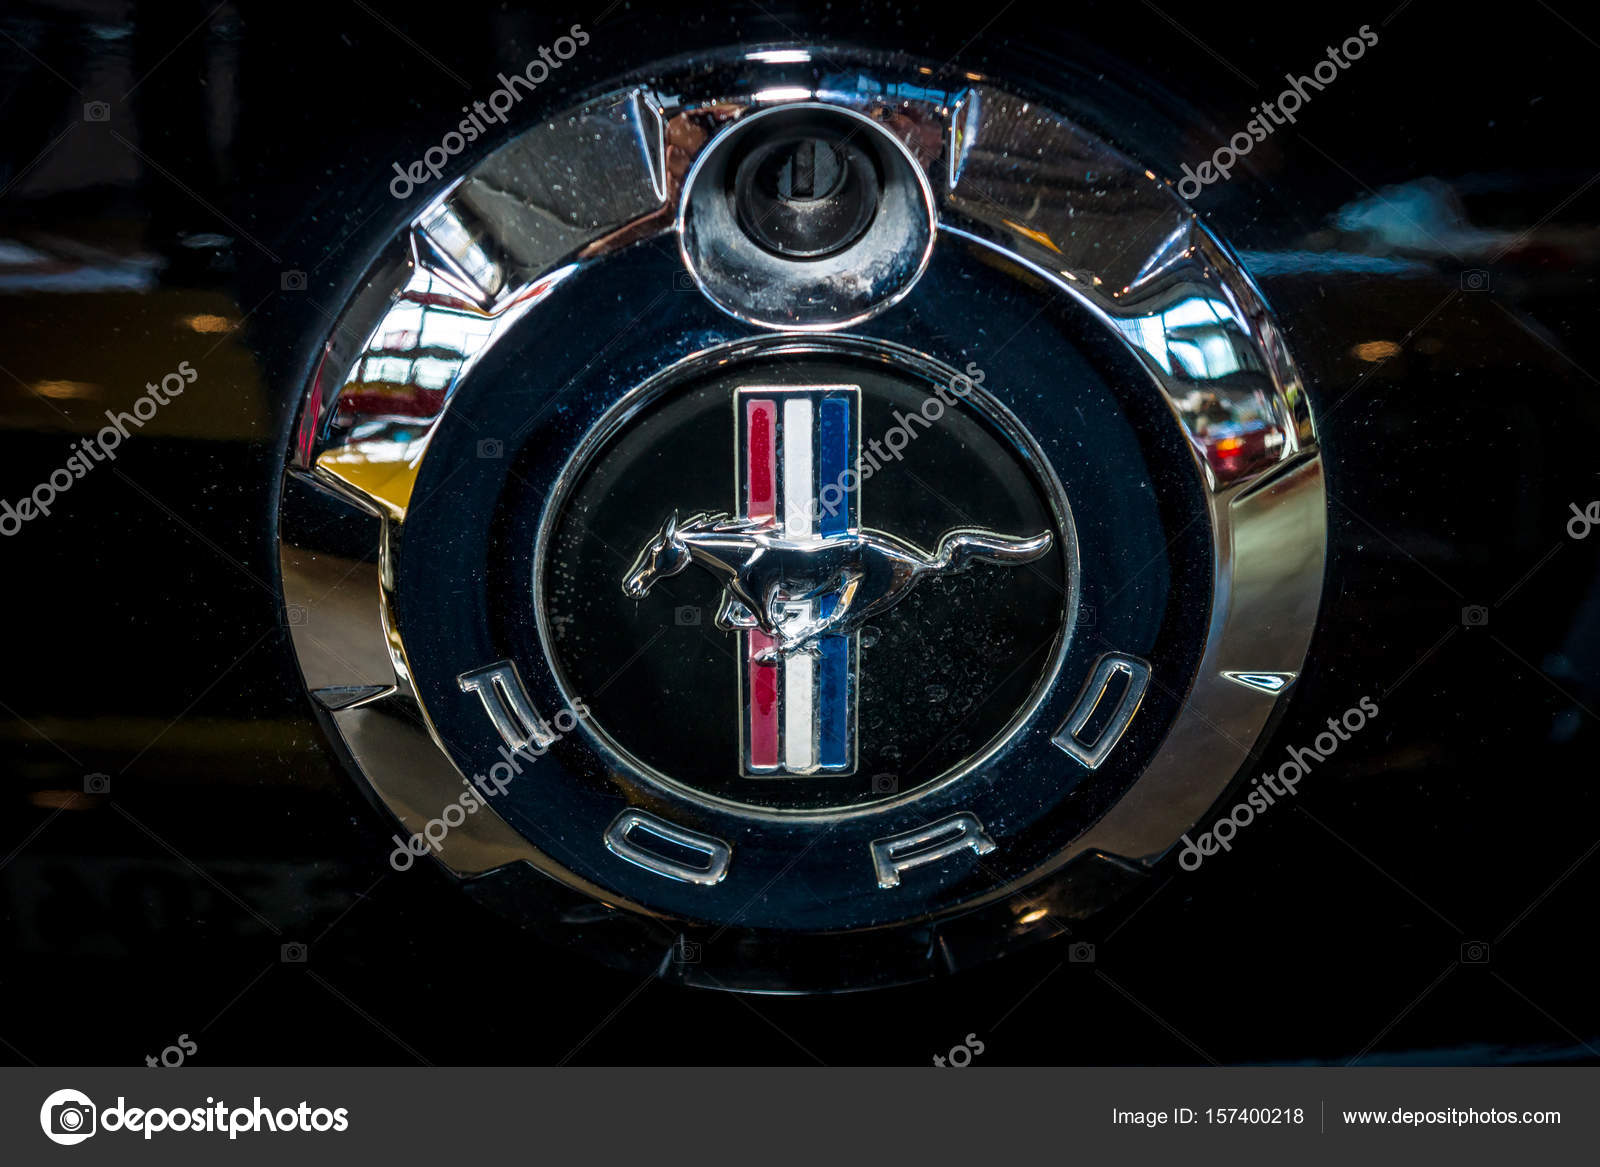 Symbol of ford mustang close up stock editorial photo skohl stuttgart germany march 04 2017 symbol of ford mustang close up europes greatest classic car exhibition retro classics photo by skohl biocorpaavc Gallery